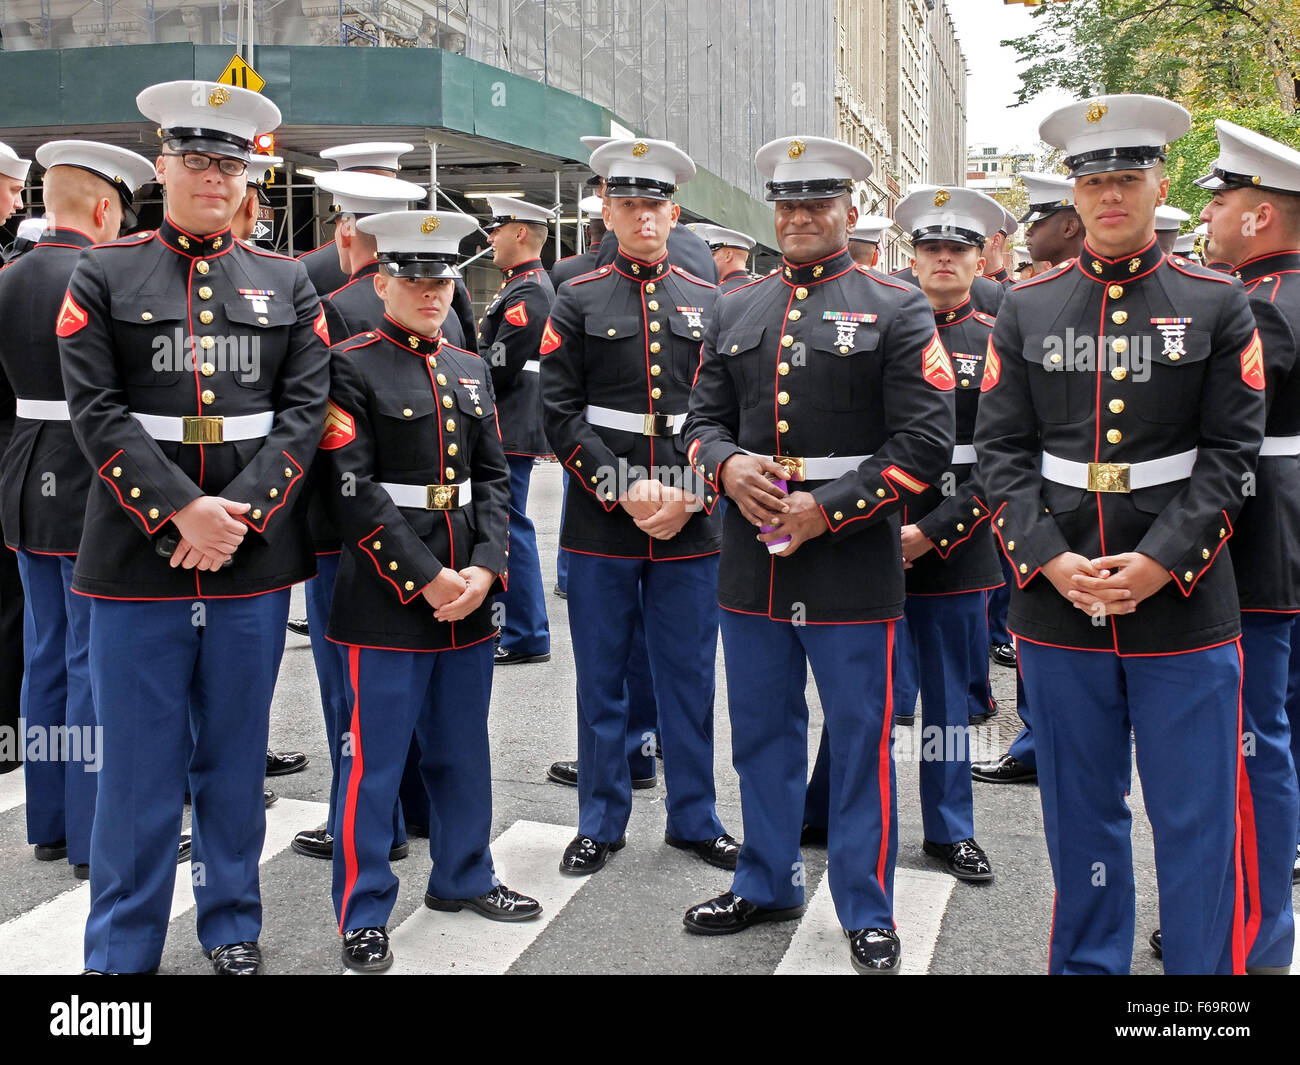 A Group Of United States Marines In Uniform Prior To The